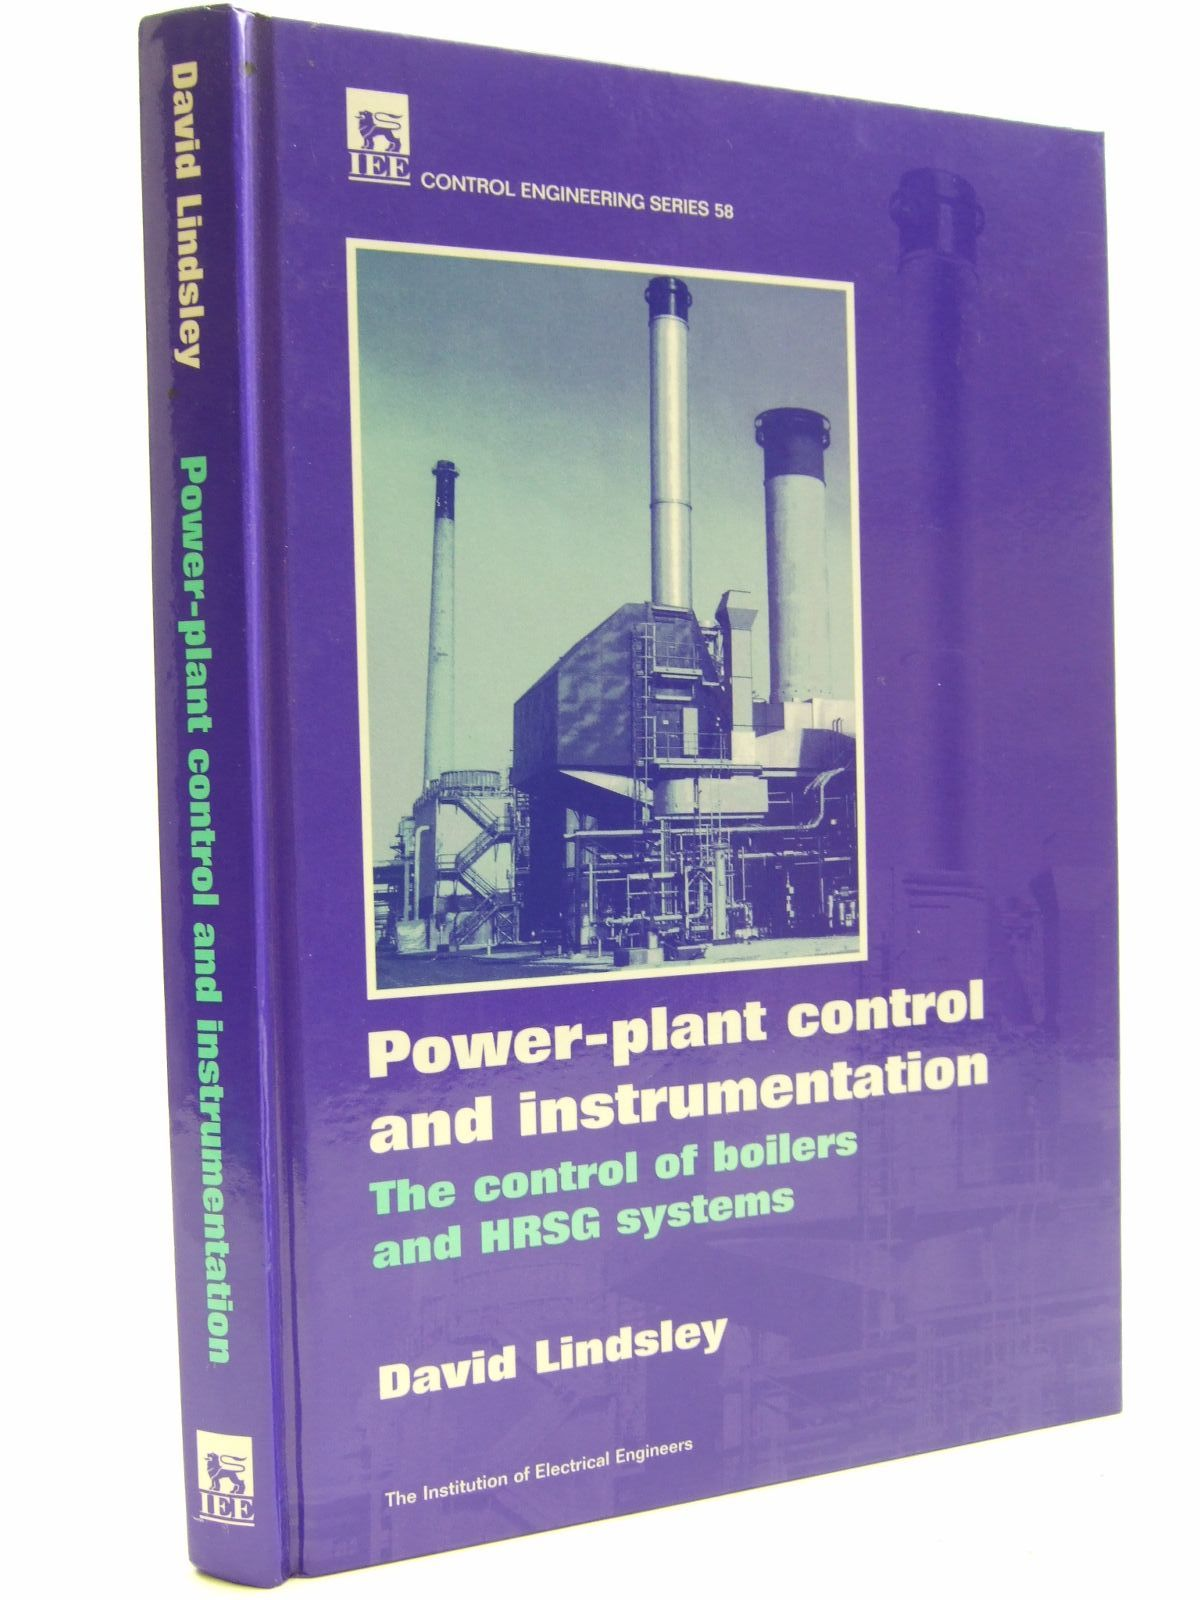 ELECTRIC POWER SYSTEM CONTROL written by Young H P STOCK CODE